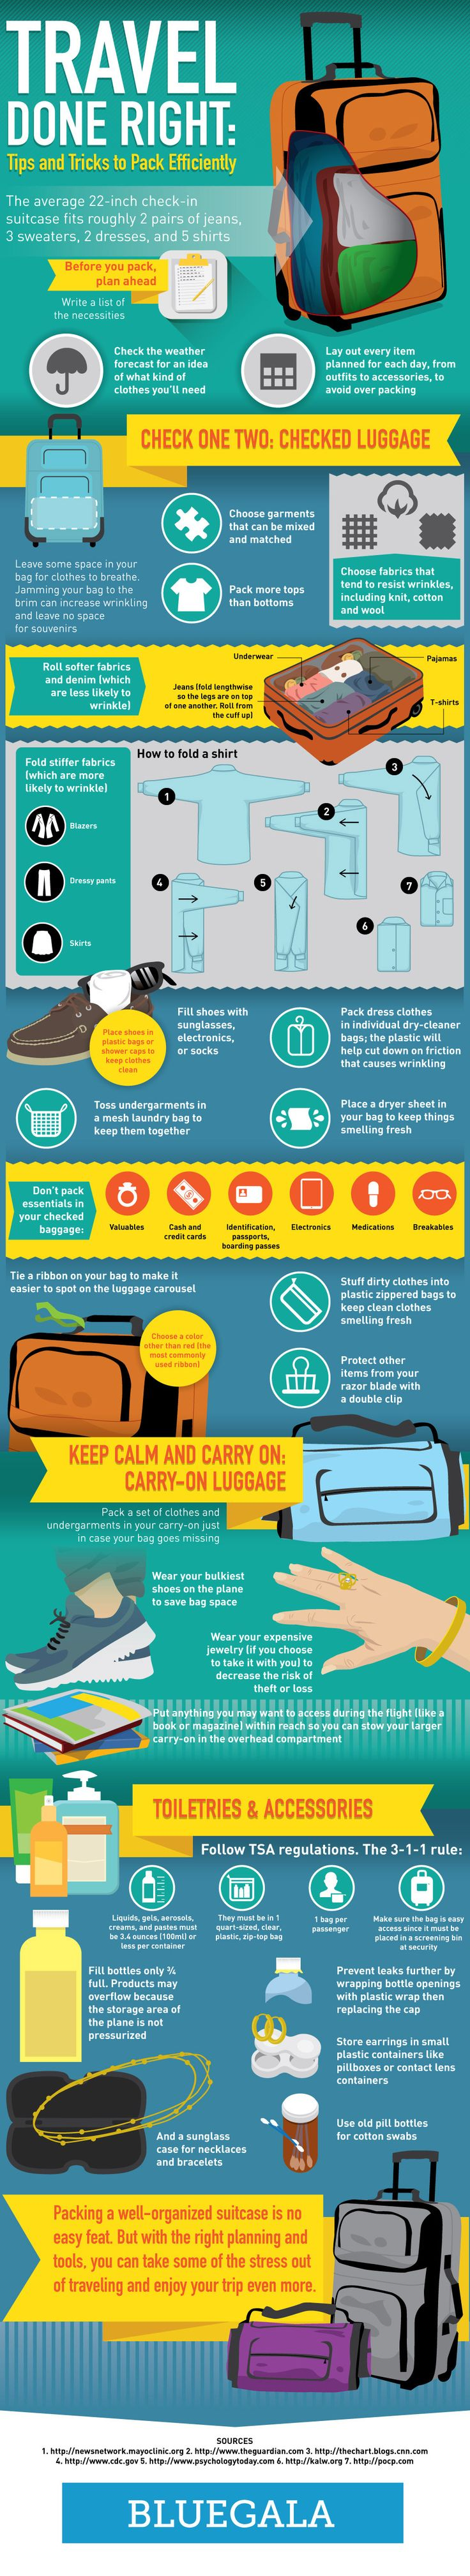 Travel tips. Travel done right